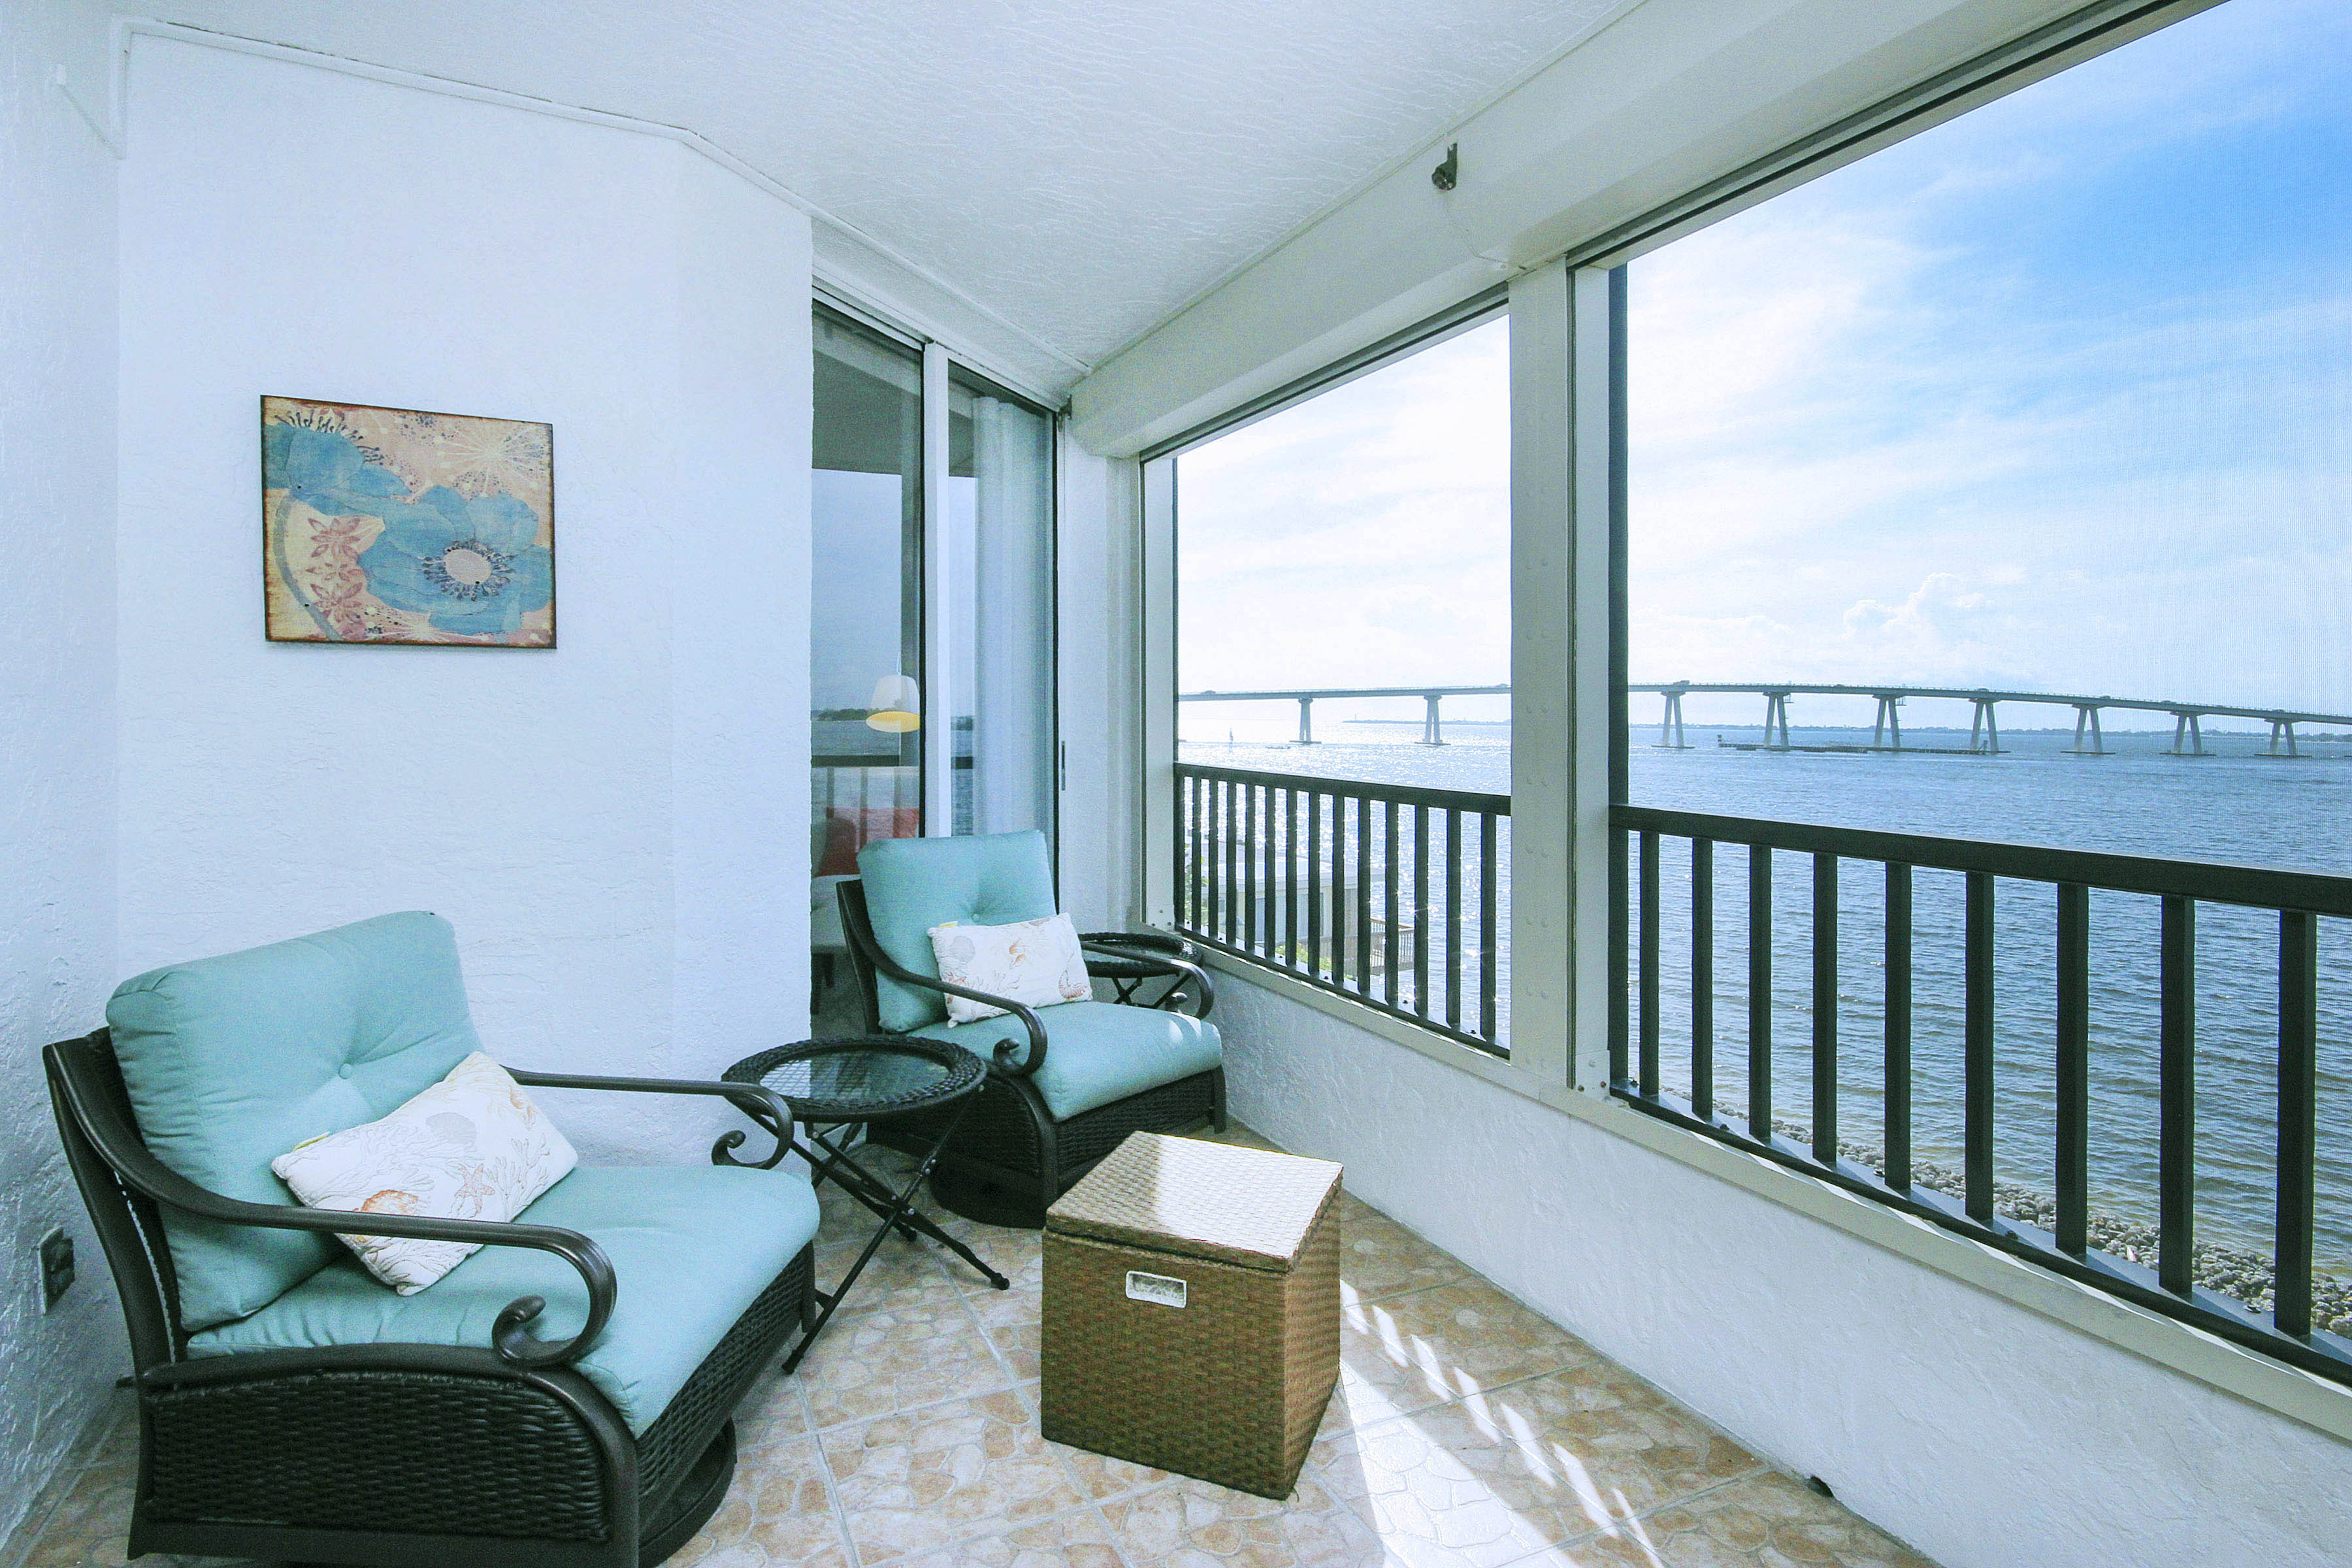 Property Image 1 - Picturesque Waterfront 2 Bed Condo minutes from Sanibel